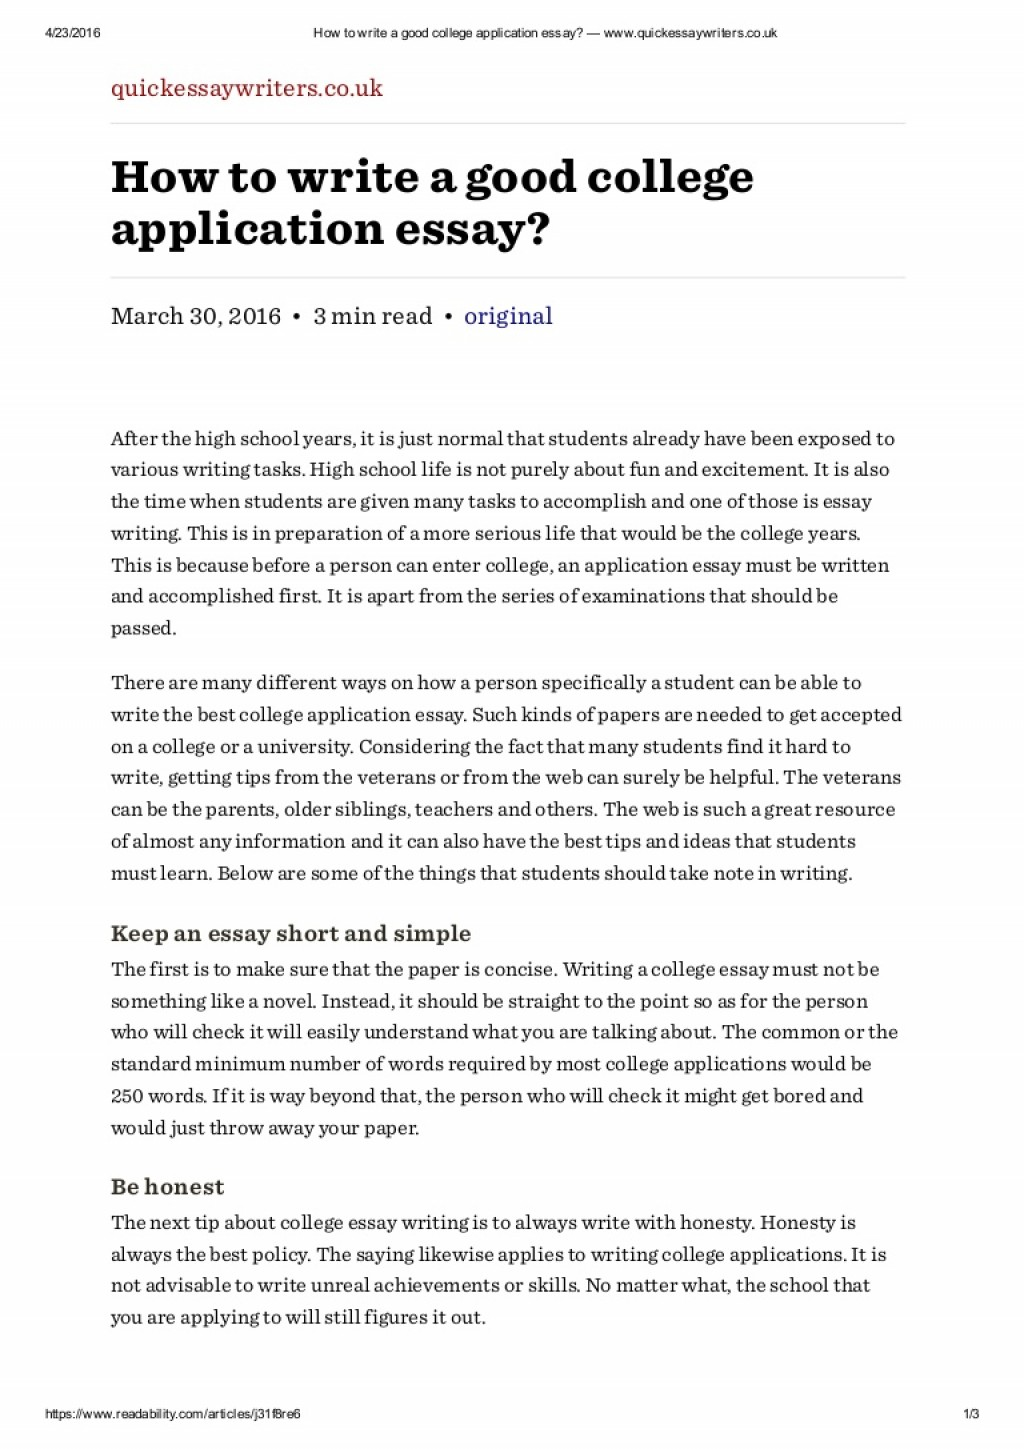 009 Howtowriteagoodcollegeapplicationessaywww Thumbnail Essay Example Writing College Rare A Application How To Write Outline Examples Of Essays About Yourself Sample Large